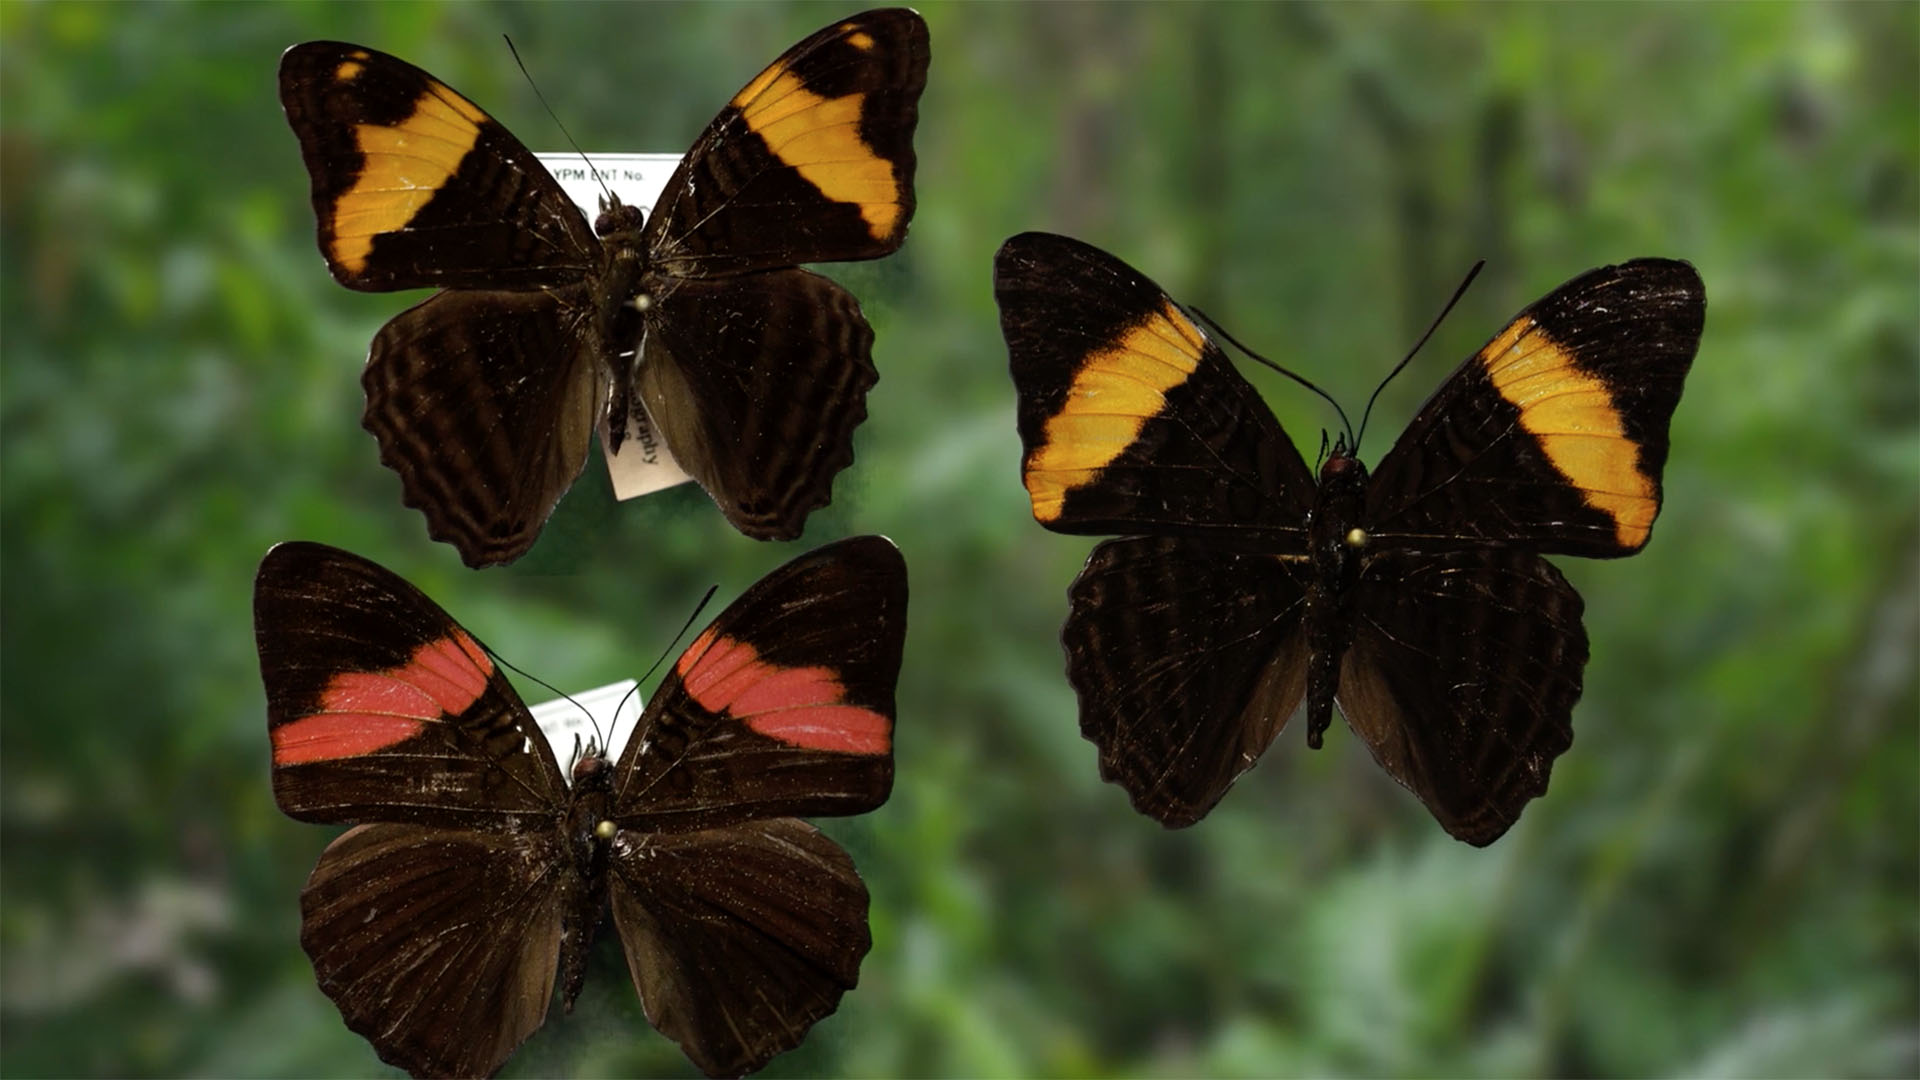 Sex, Lies and Butterflies - Butterfly Mimicry